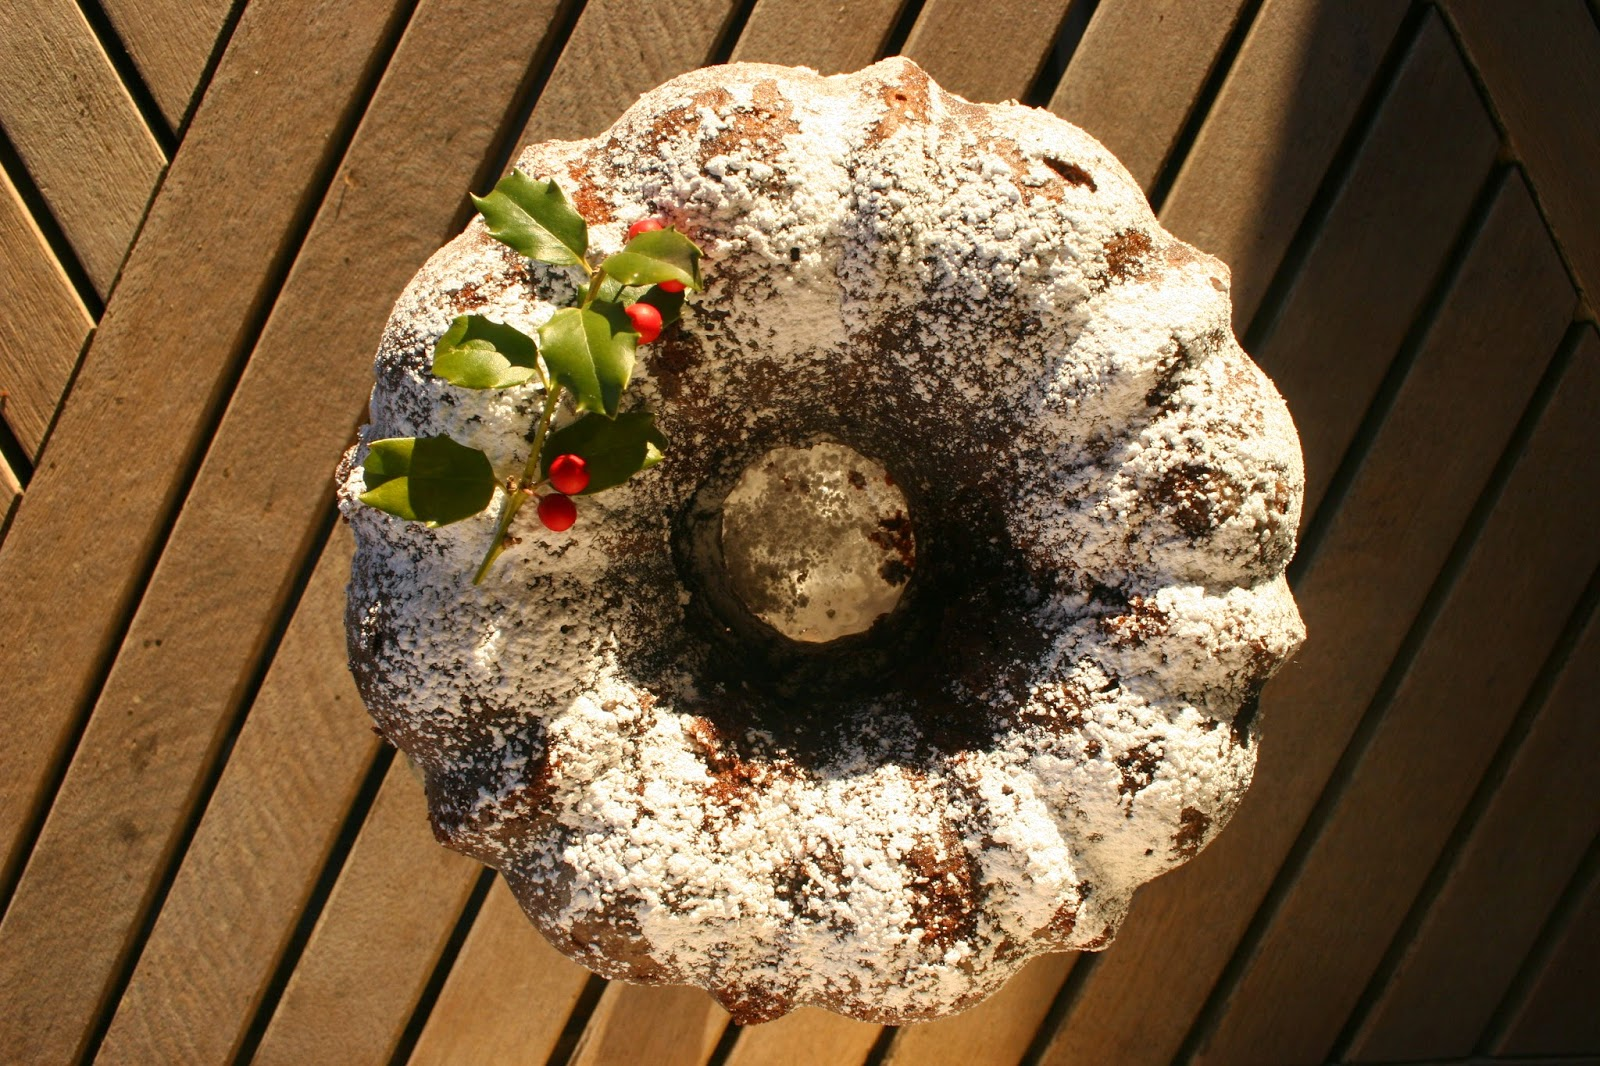 Whiskey-Soaked Dark Chocolate Bundt Cake with holly